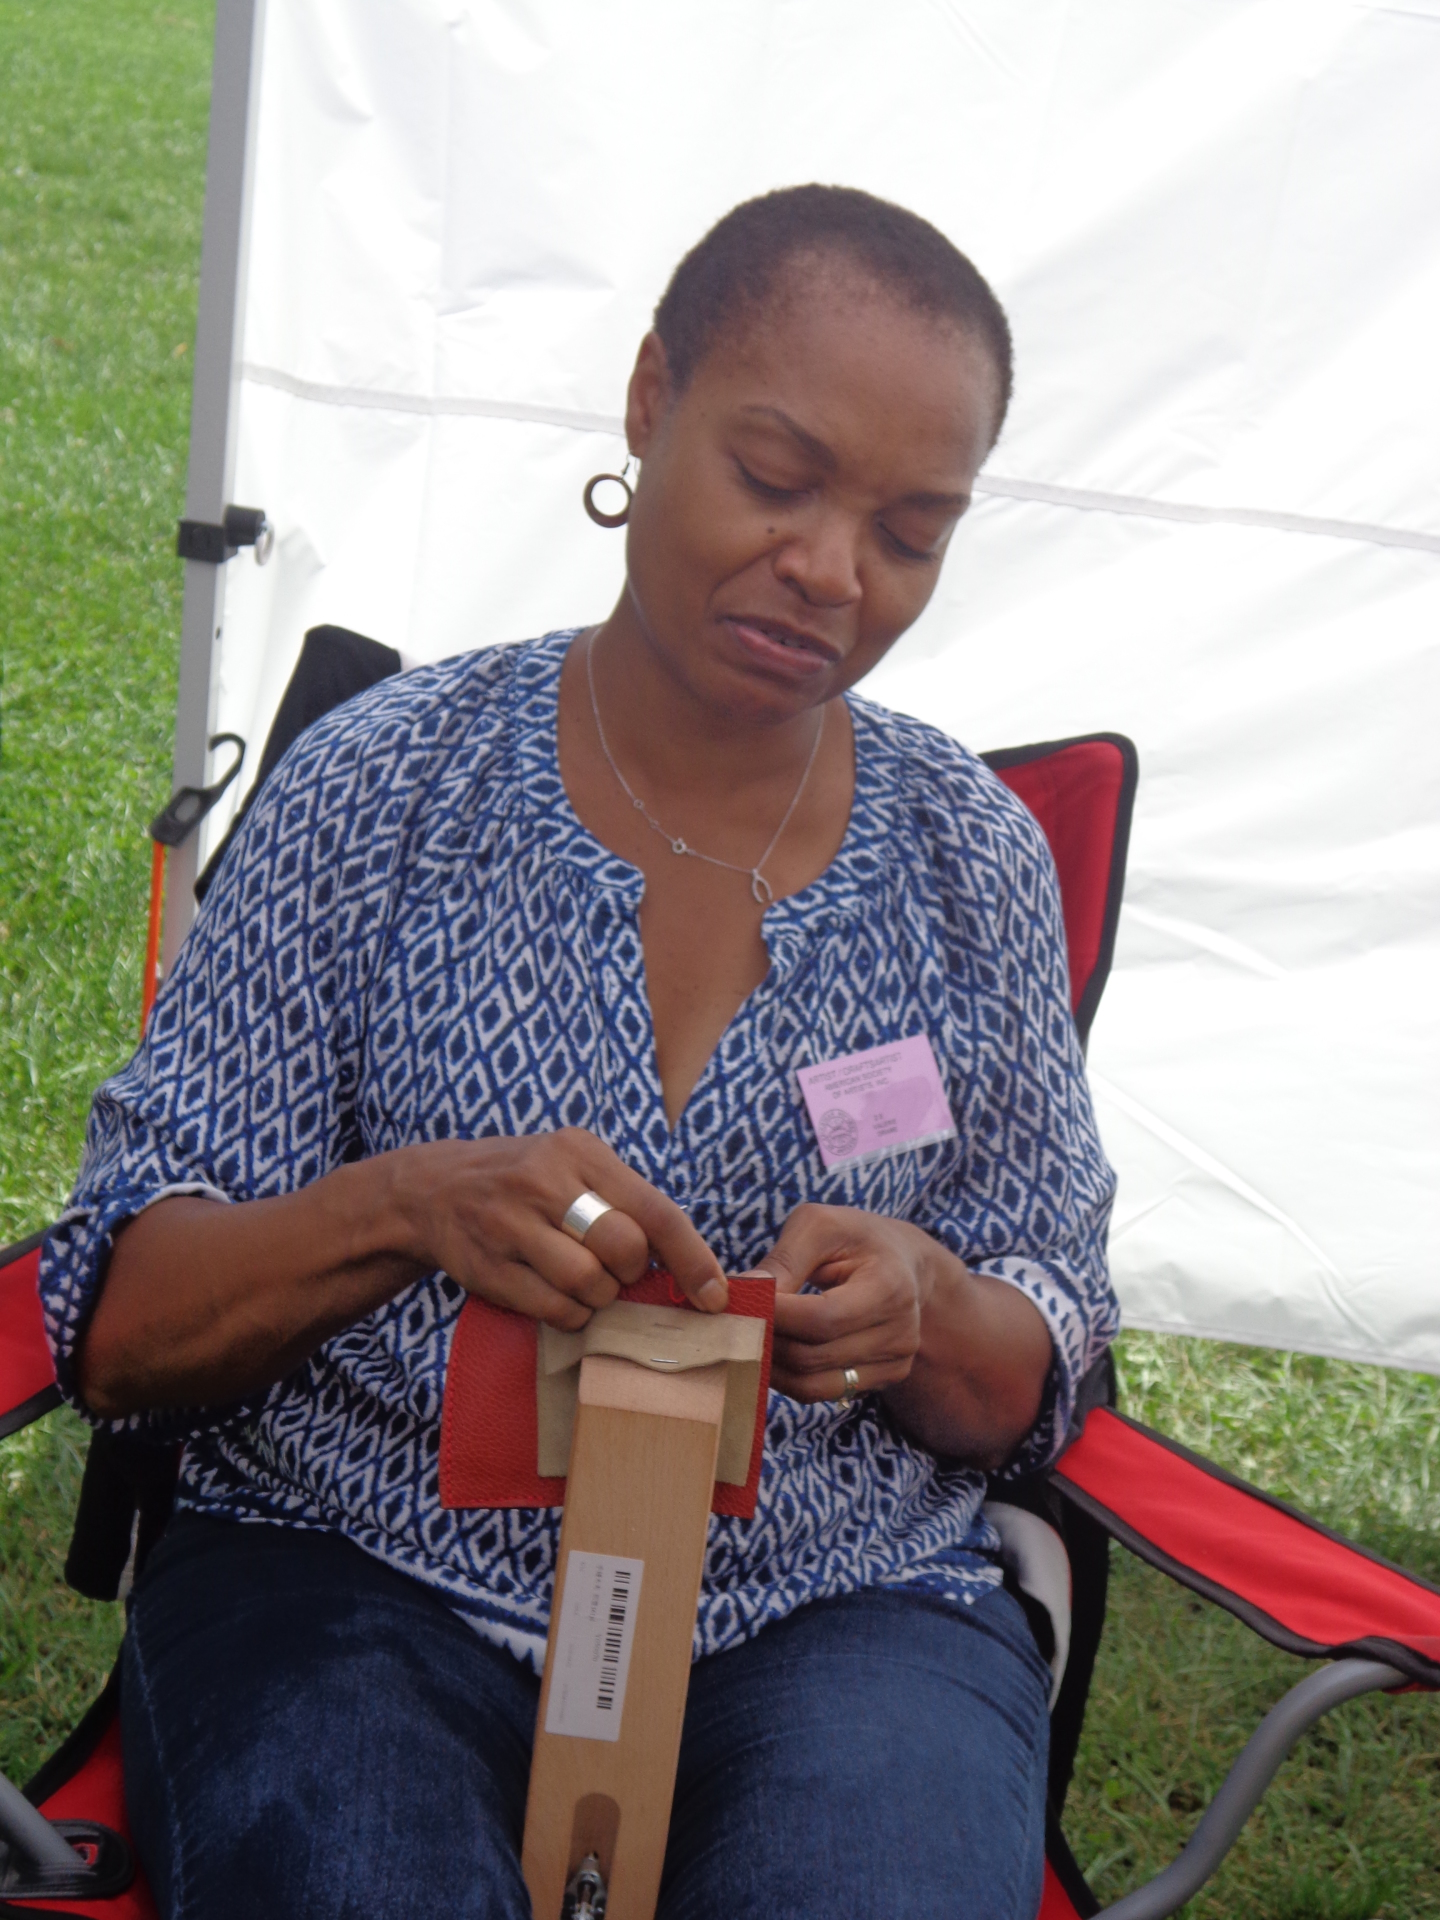 Artist at Work in her booth at show